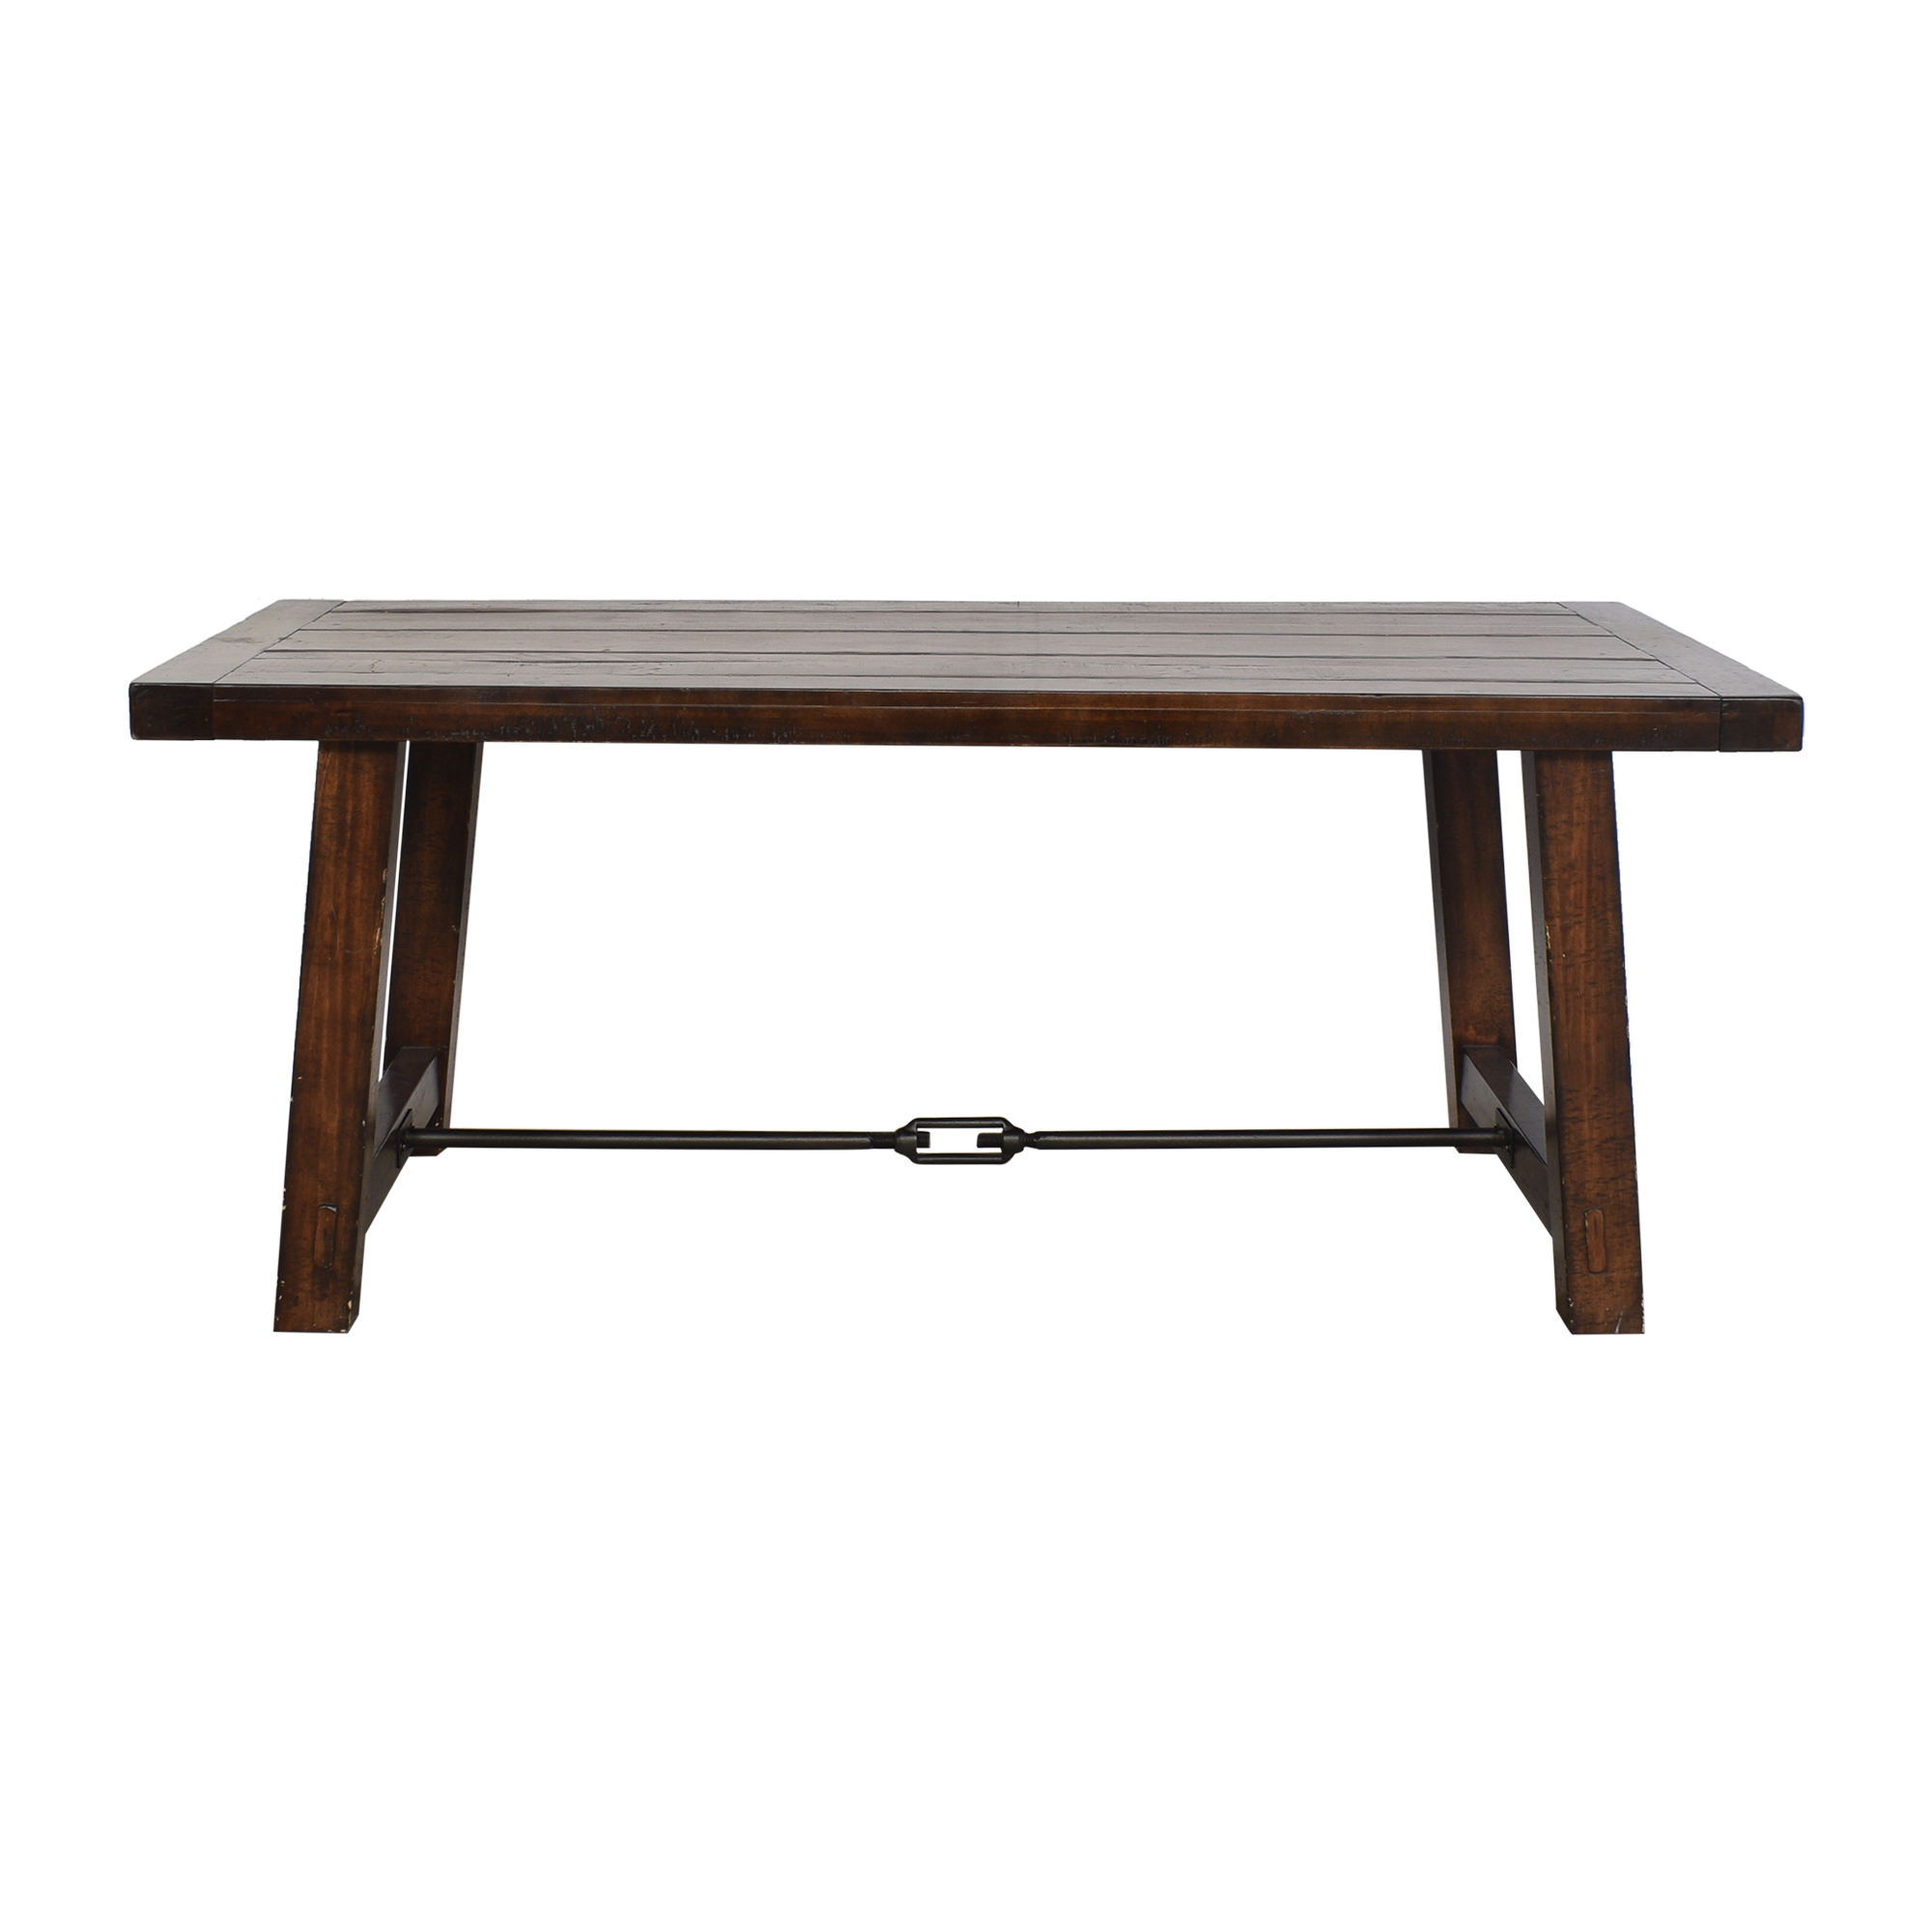 49 off pottery barn pottery barn benchwright dining table tables